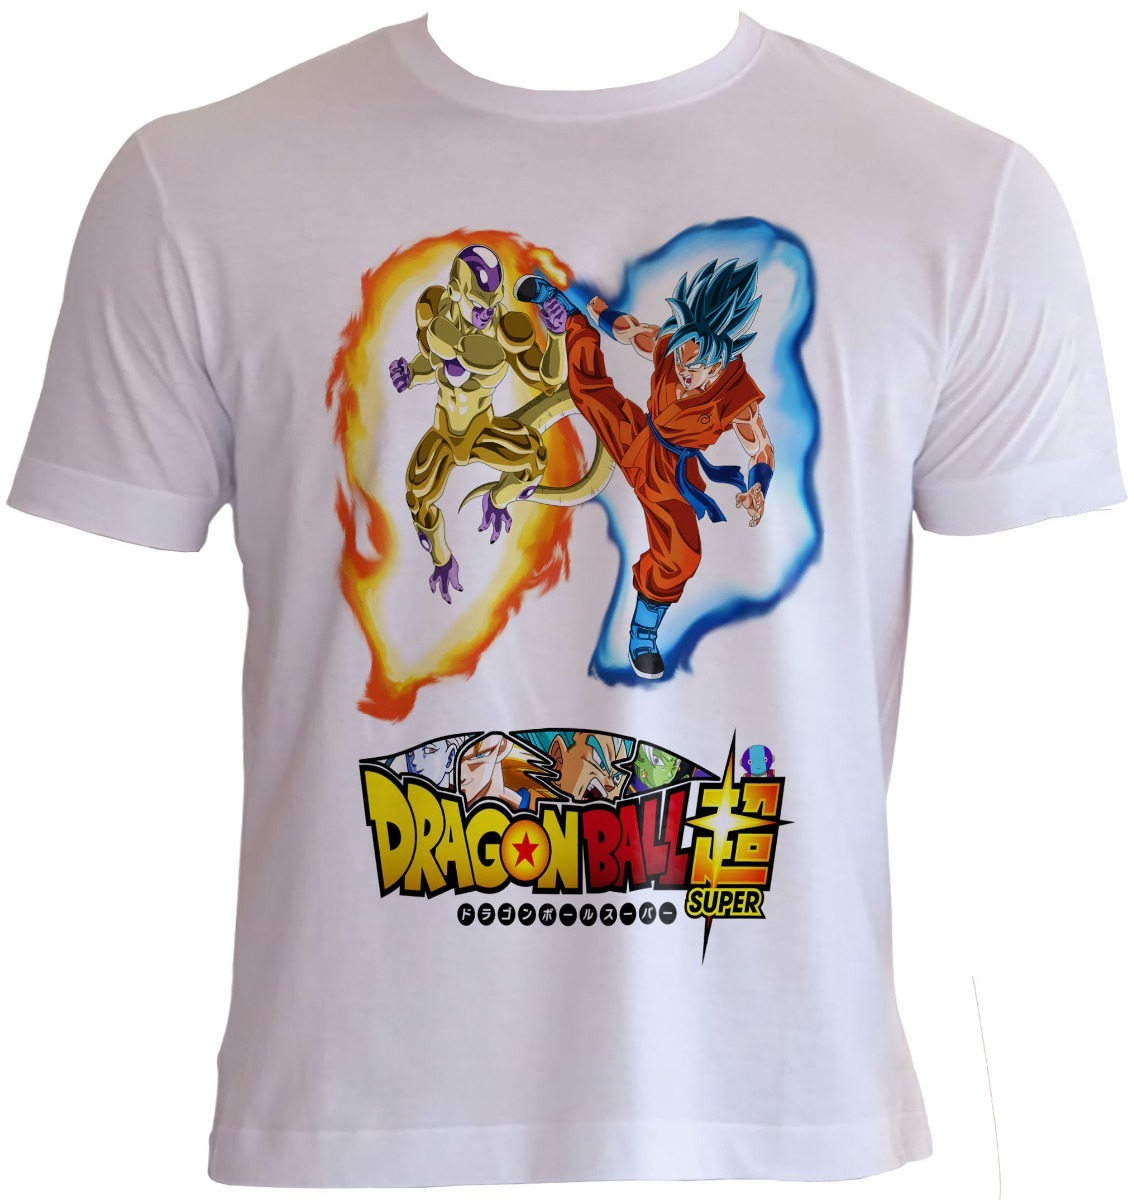 camisa goku deus vs freeza dourado animes dragon ball super. Carregando  zoom. 942bac09bb5